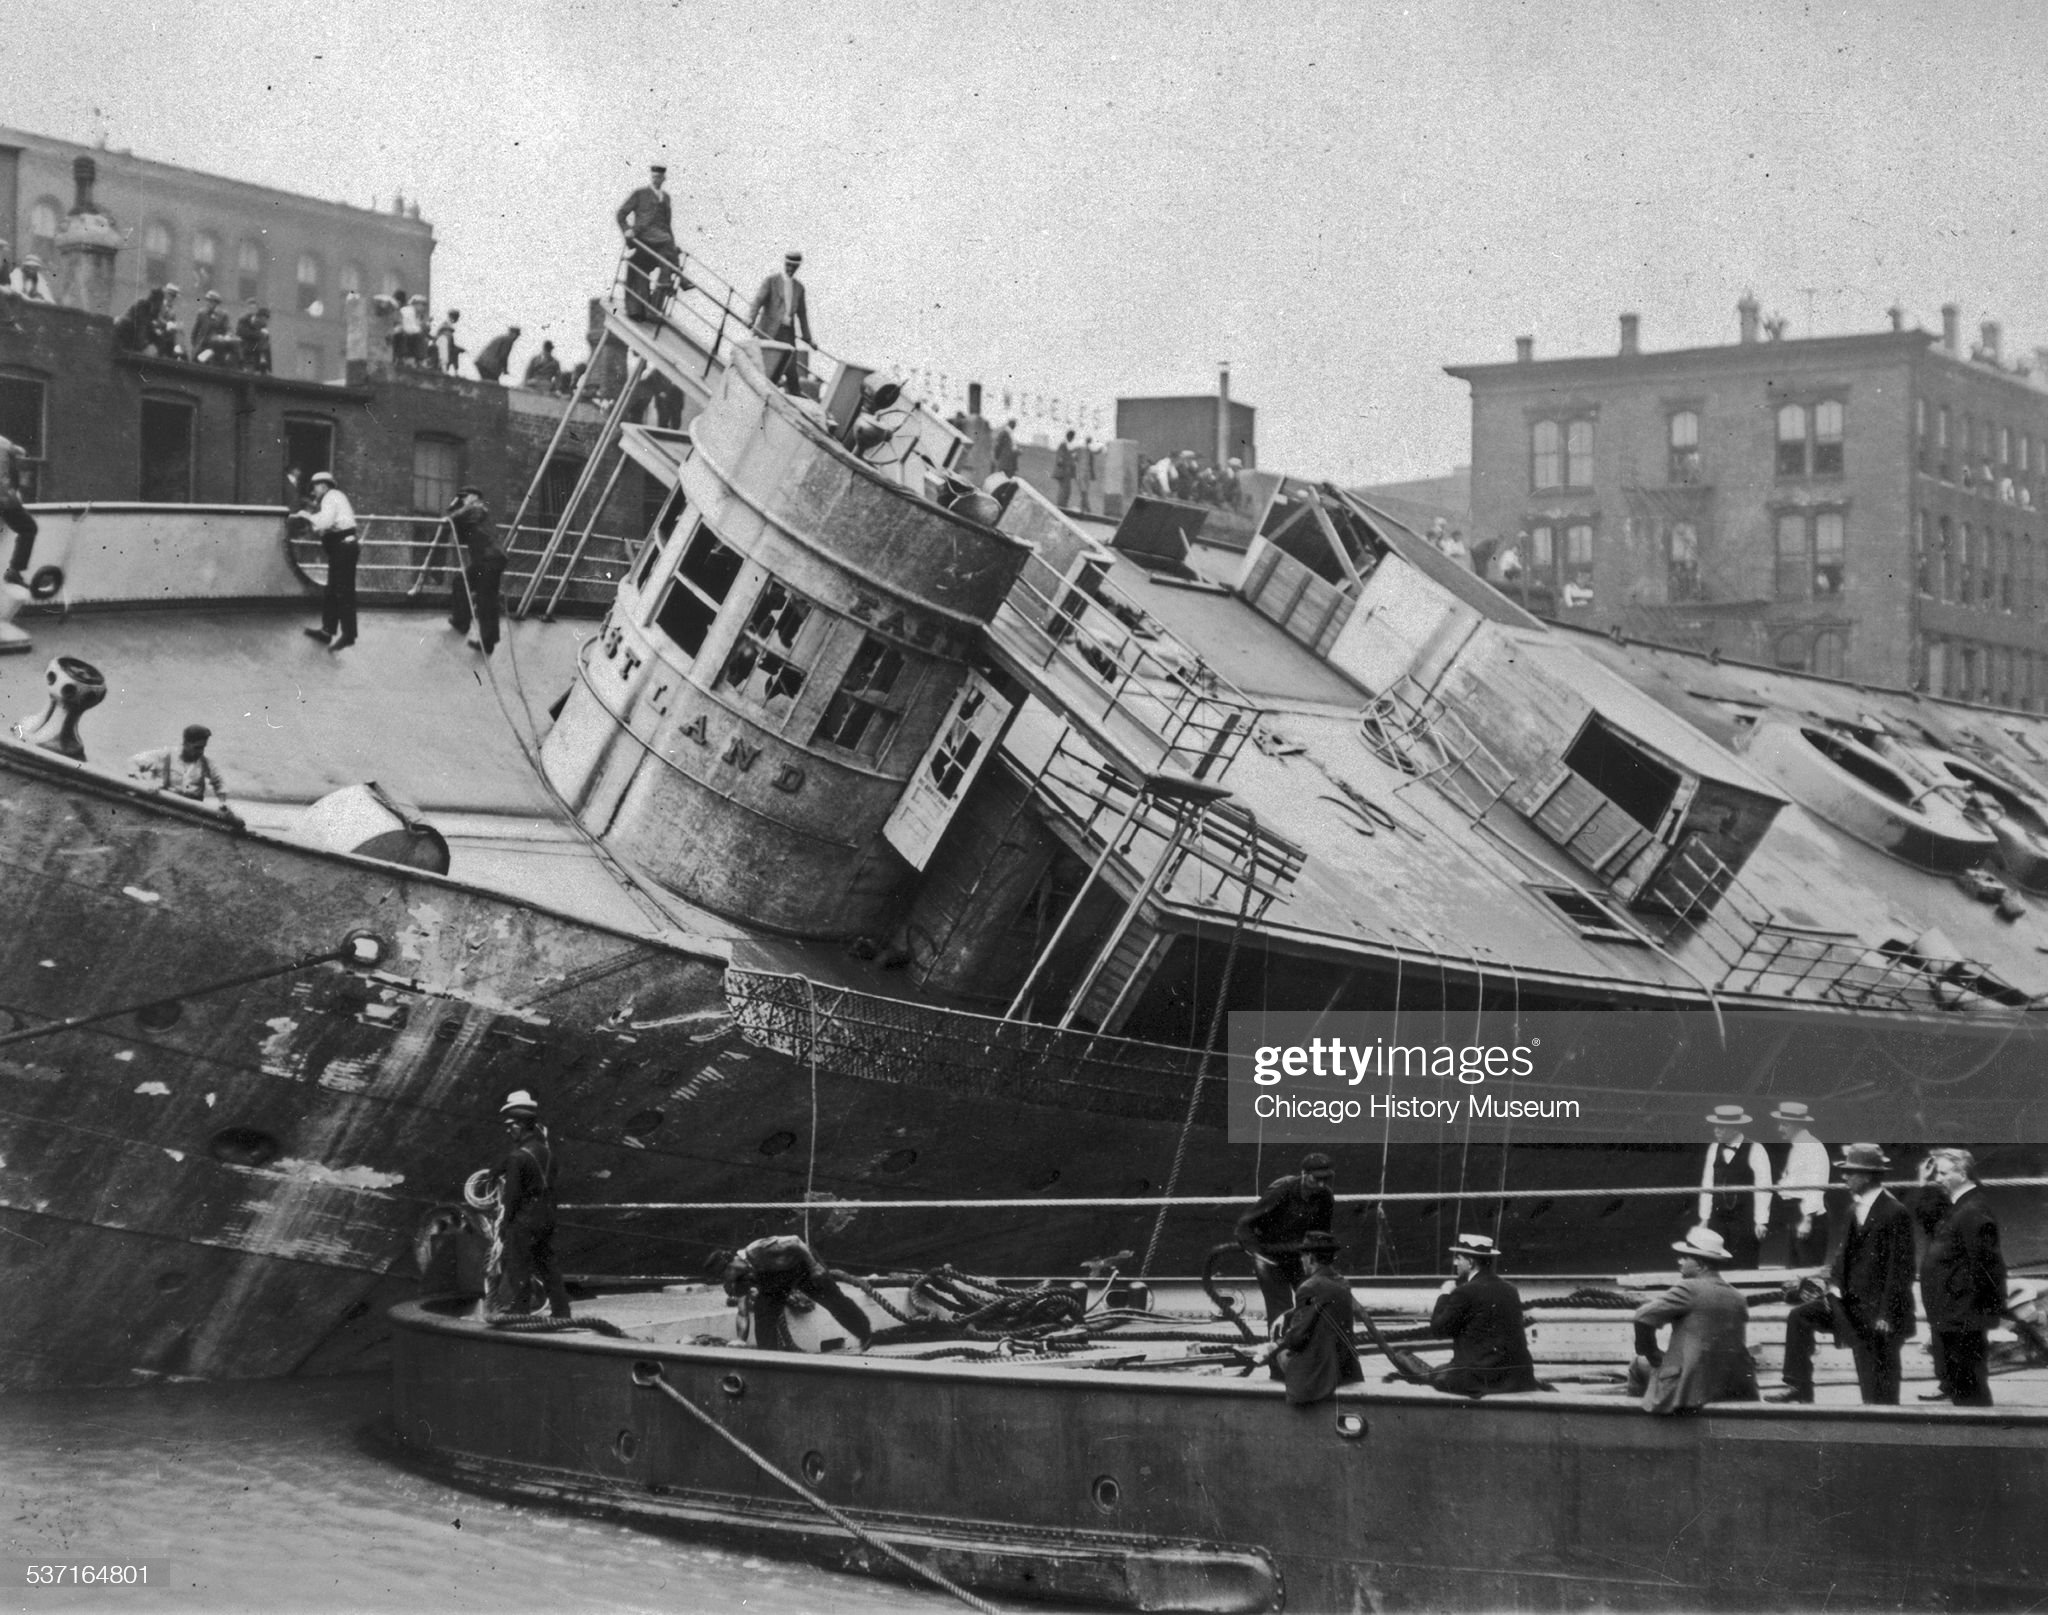 The Eastland Ship Being Righted After Disaster : News Photo